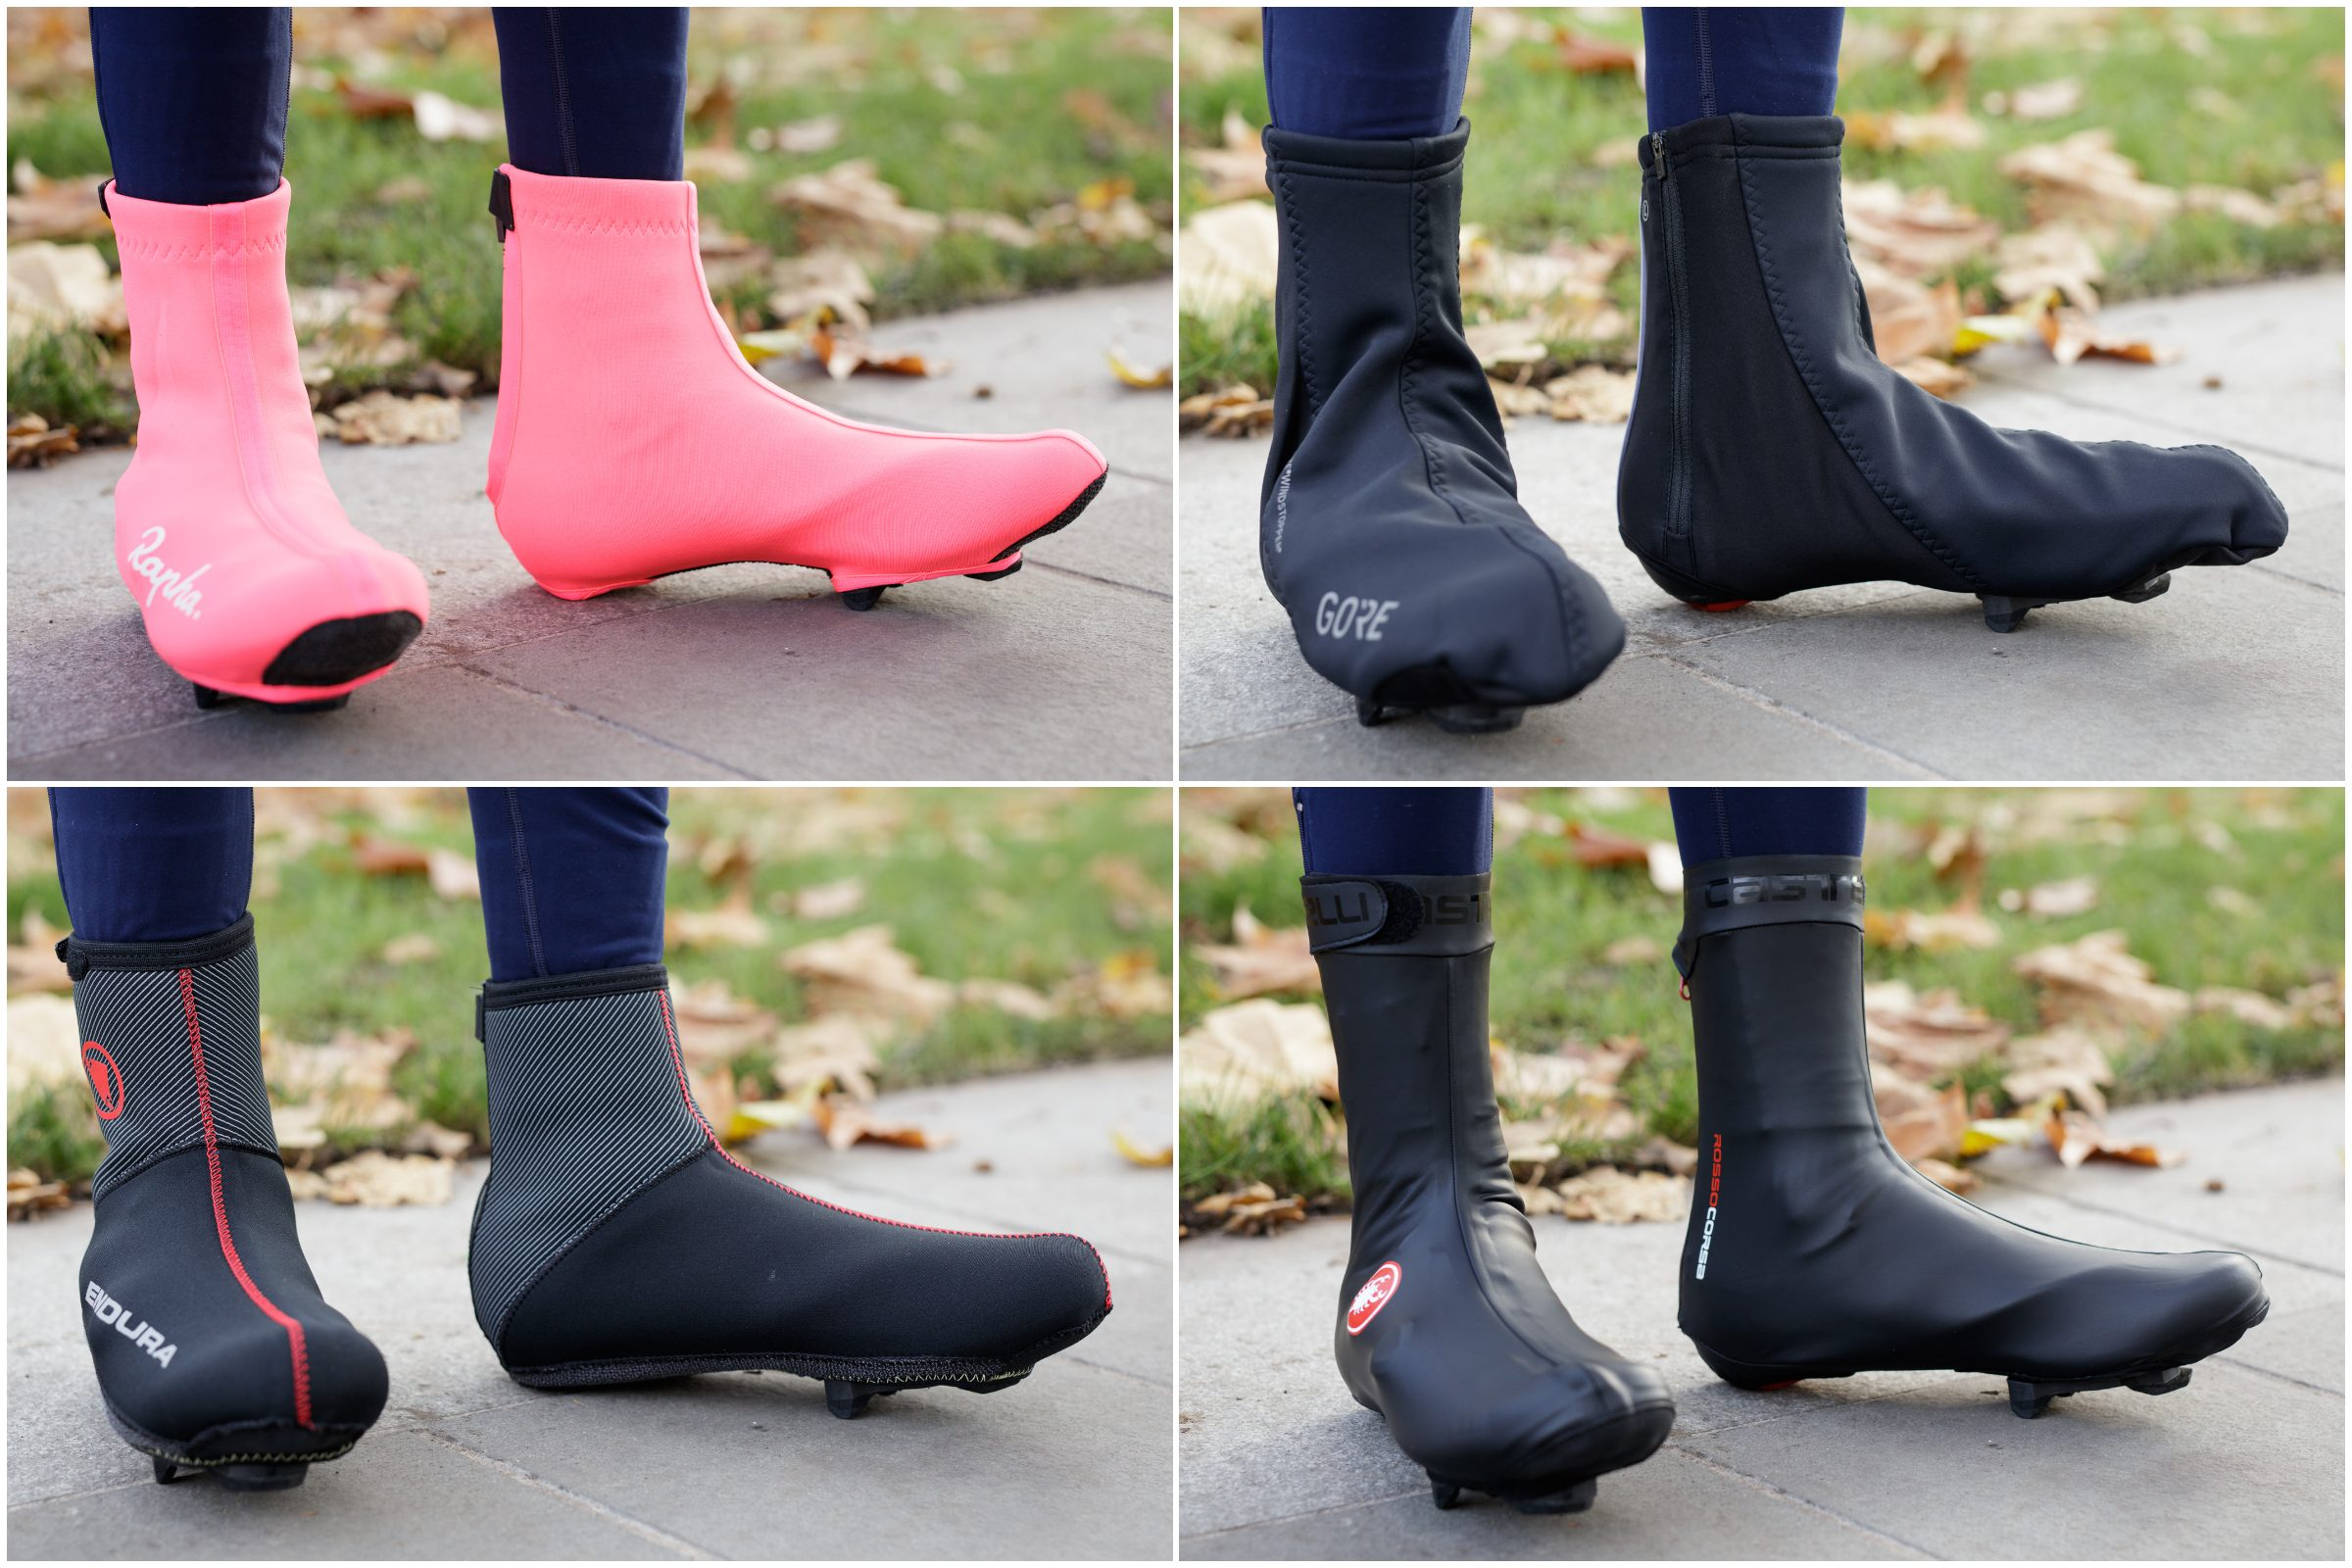 Best cycling overshoes 2020